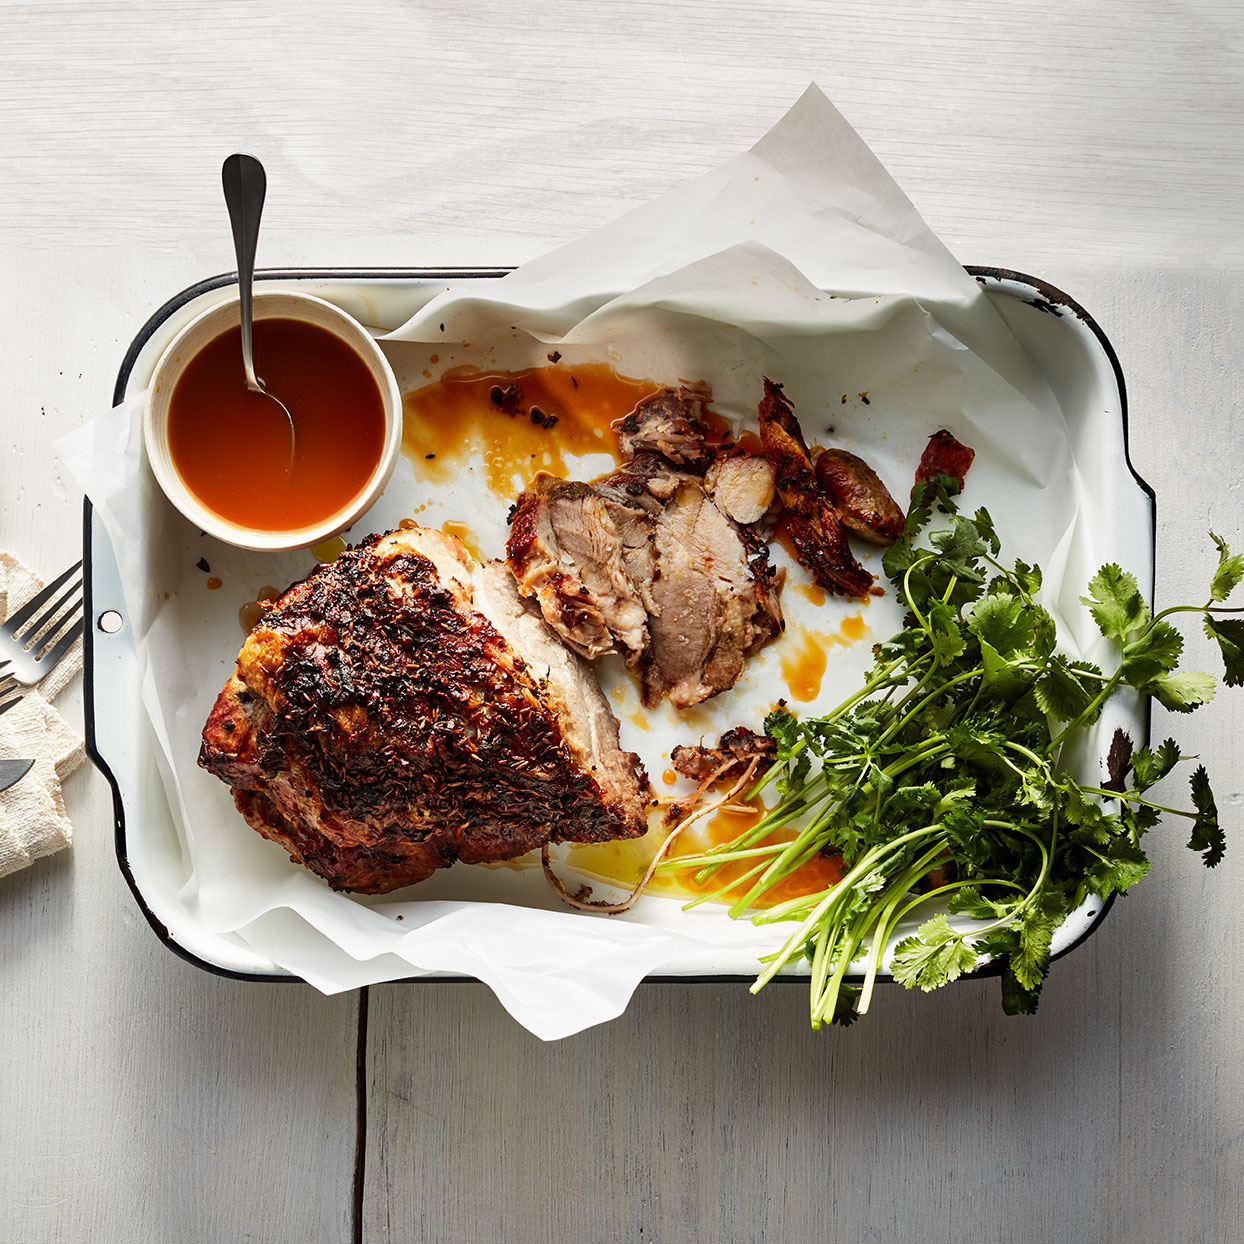 Slow-Roasted Pork Shoulder with Tequila Citrus Sauce Bruce Aidells